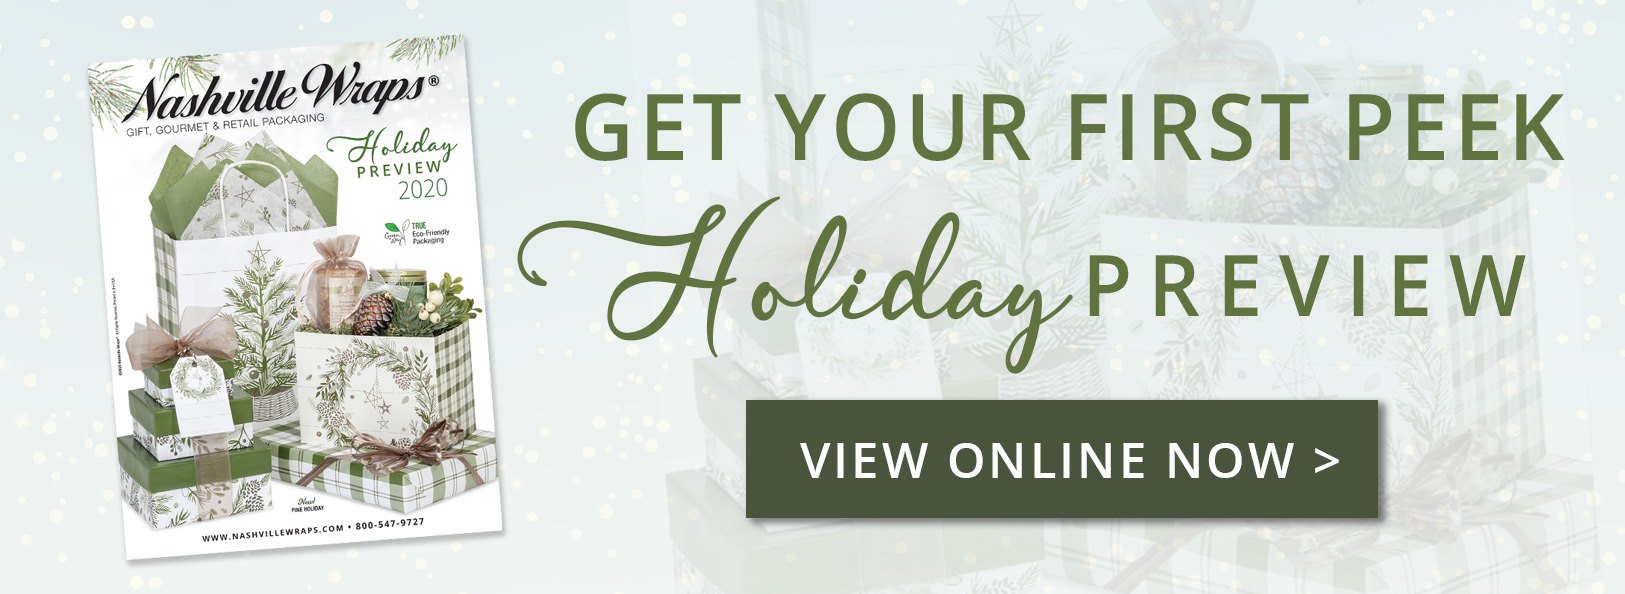 GET A SNEAK PEEK OF THE HOLIDAY PREVIEW  - VIEW NOW